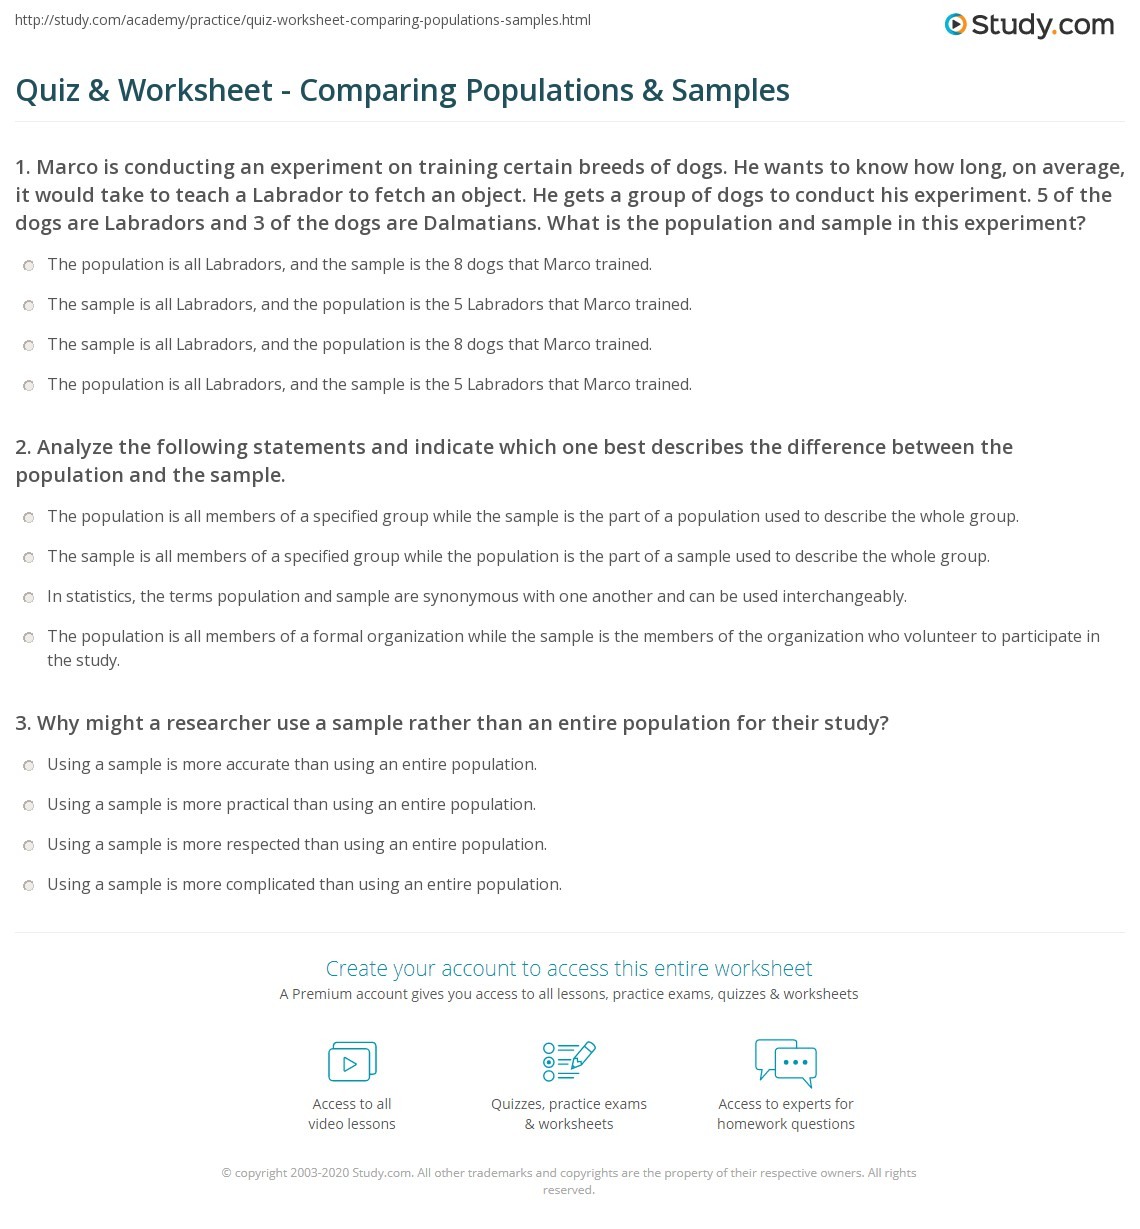 hight resolution of Quiz \u0026 Worksheet - Comparing Populations \u0026 Samples   Study.com